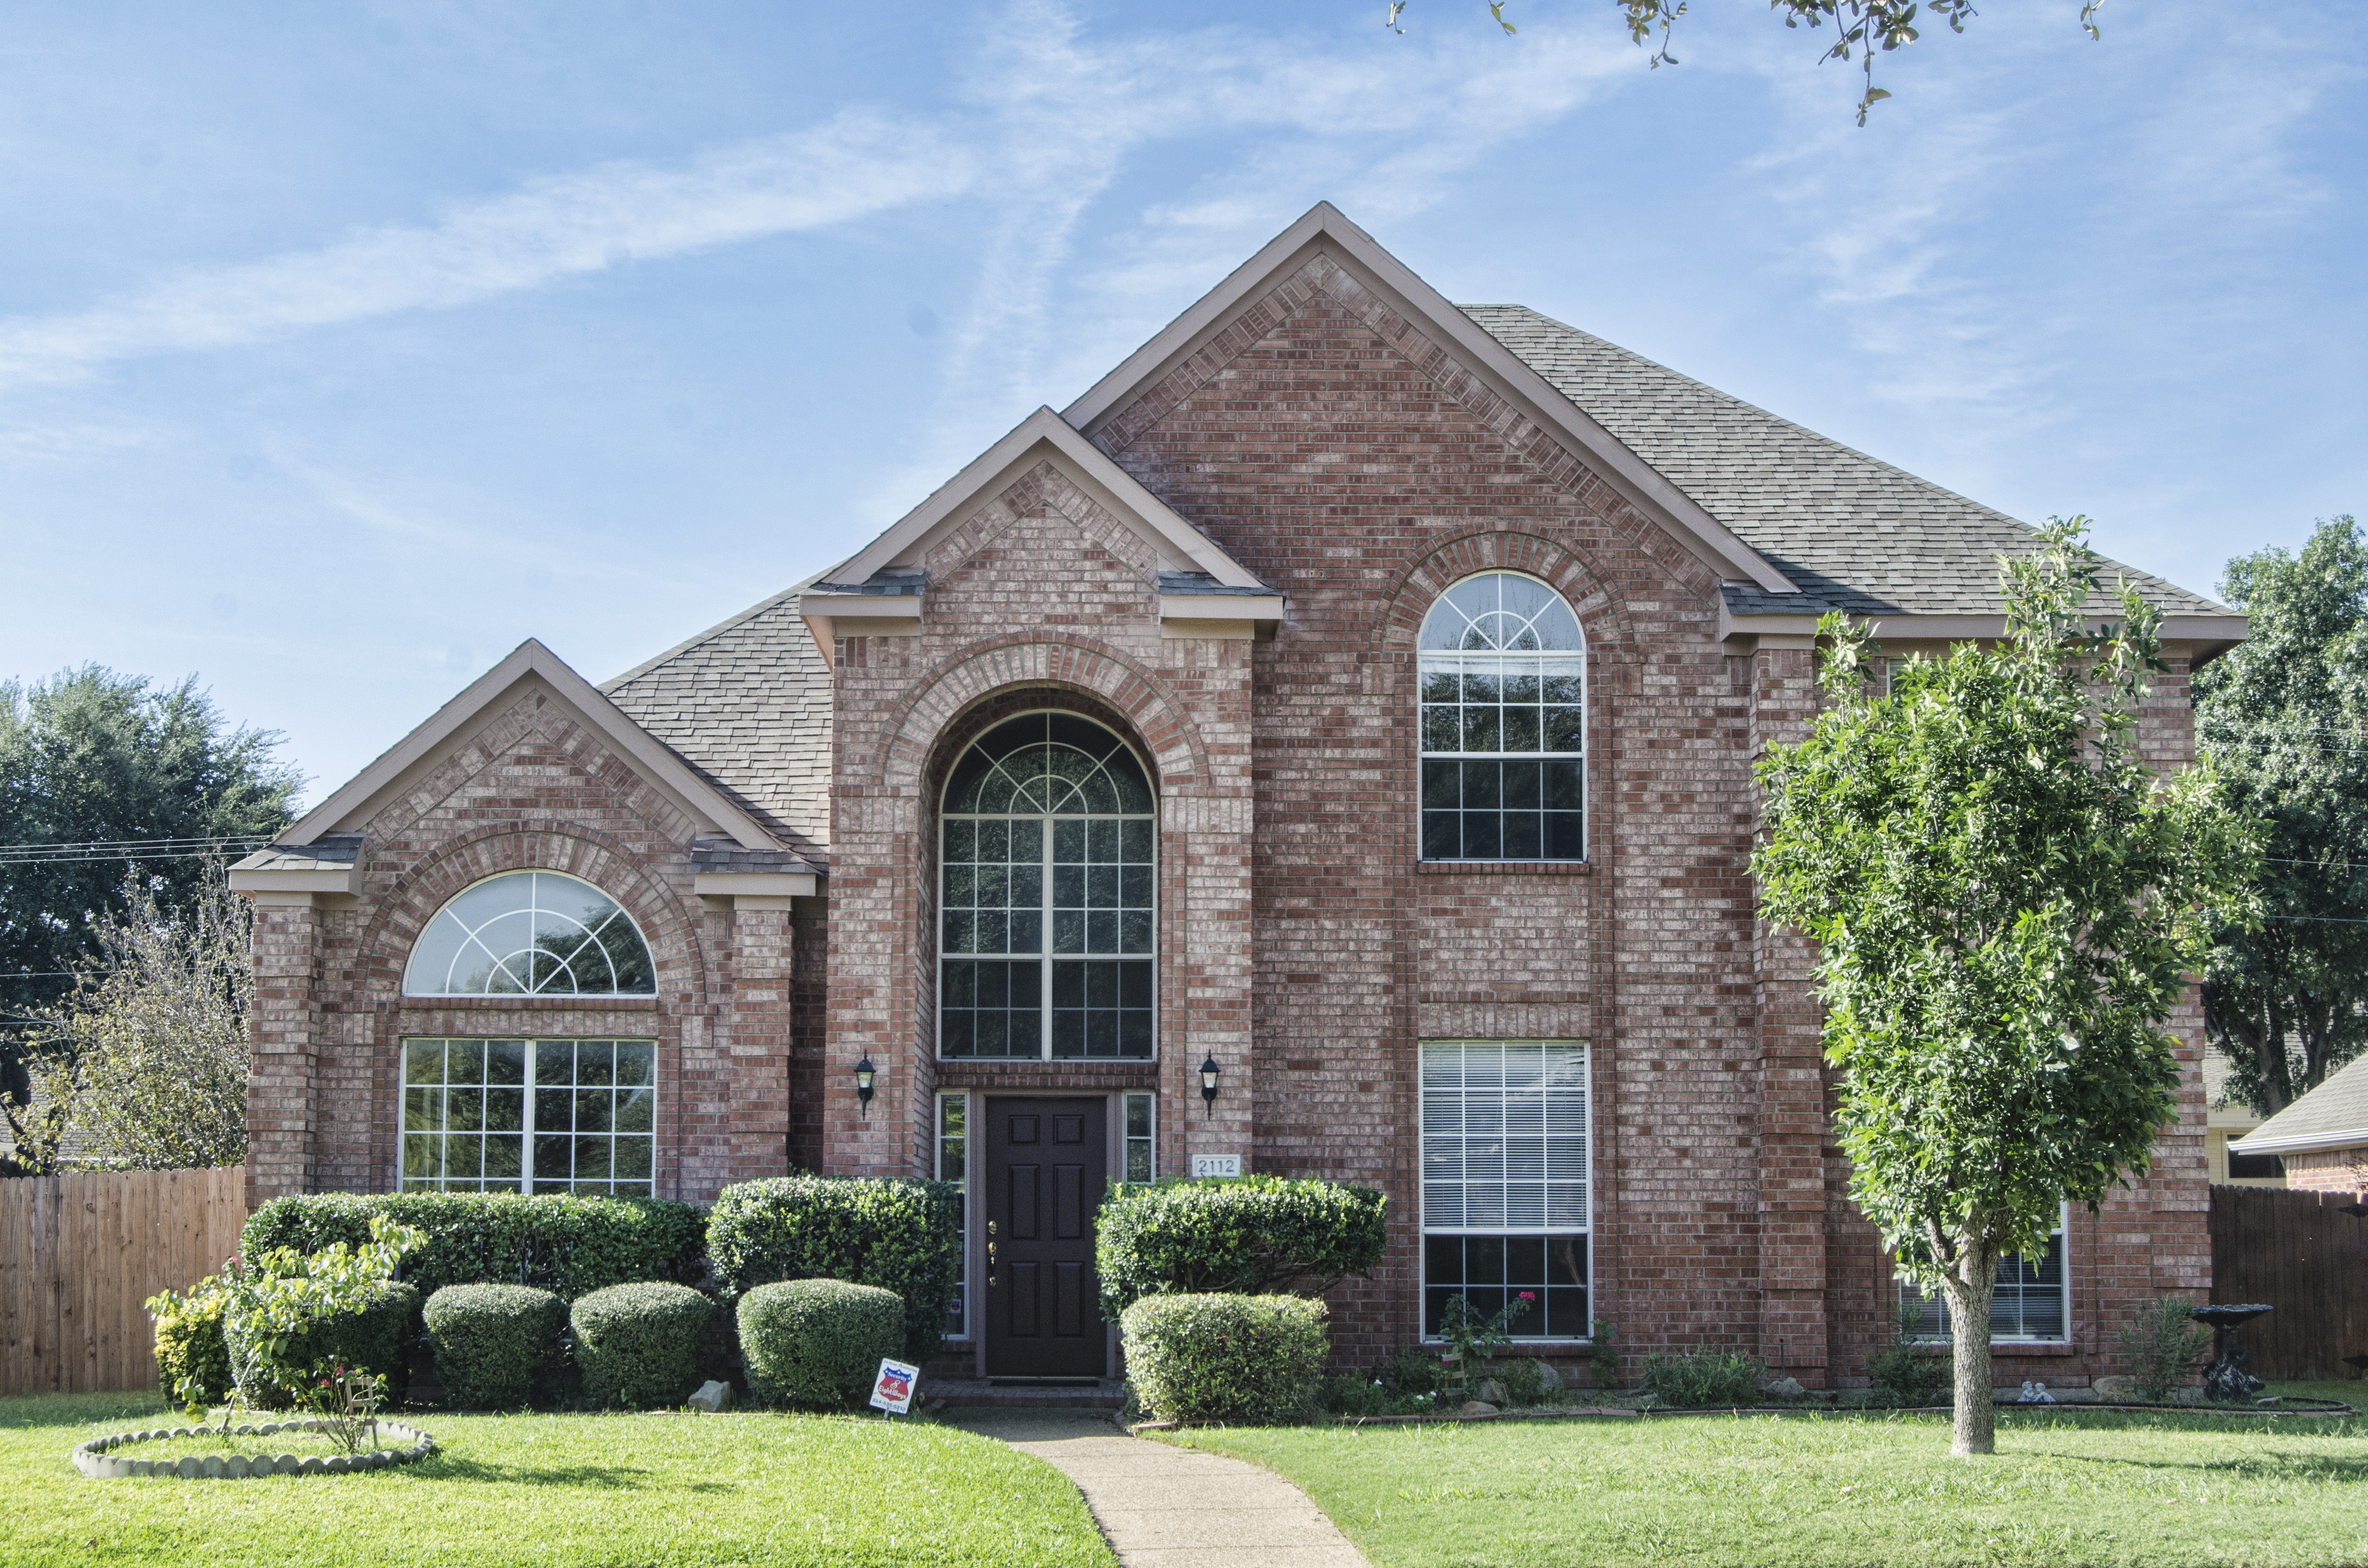 2 story plano tx homes for sale 2112 usa dr plano t for 2 story homes for sale